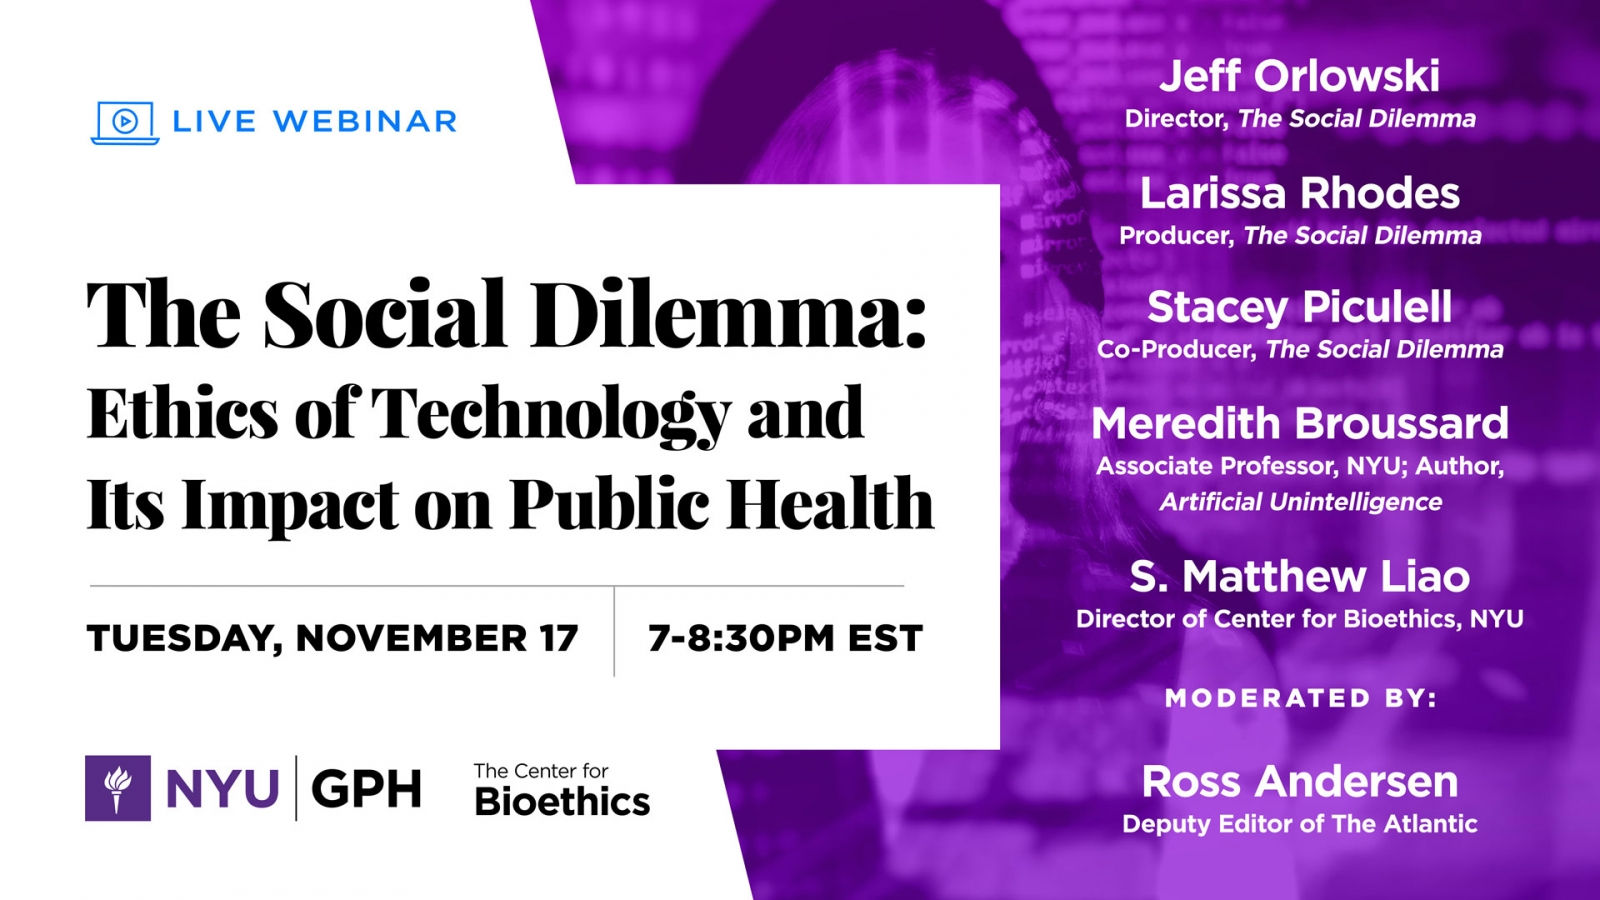 The Social Dilemma: Ethics of Technology and Its Impact on Public Health